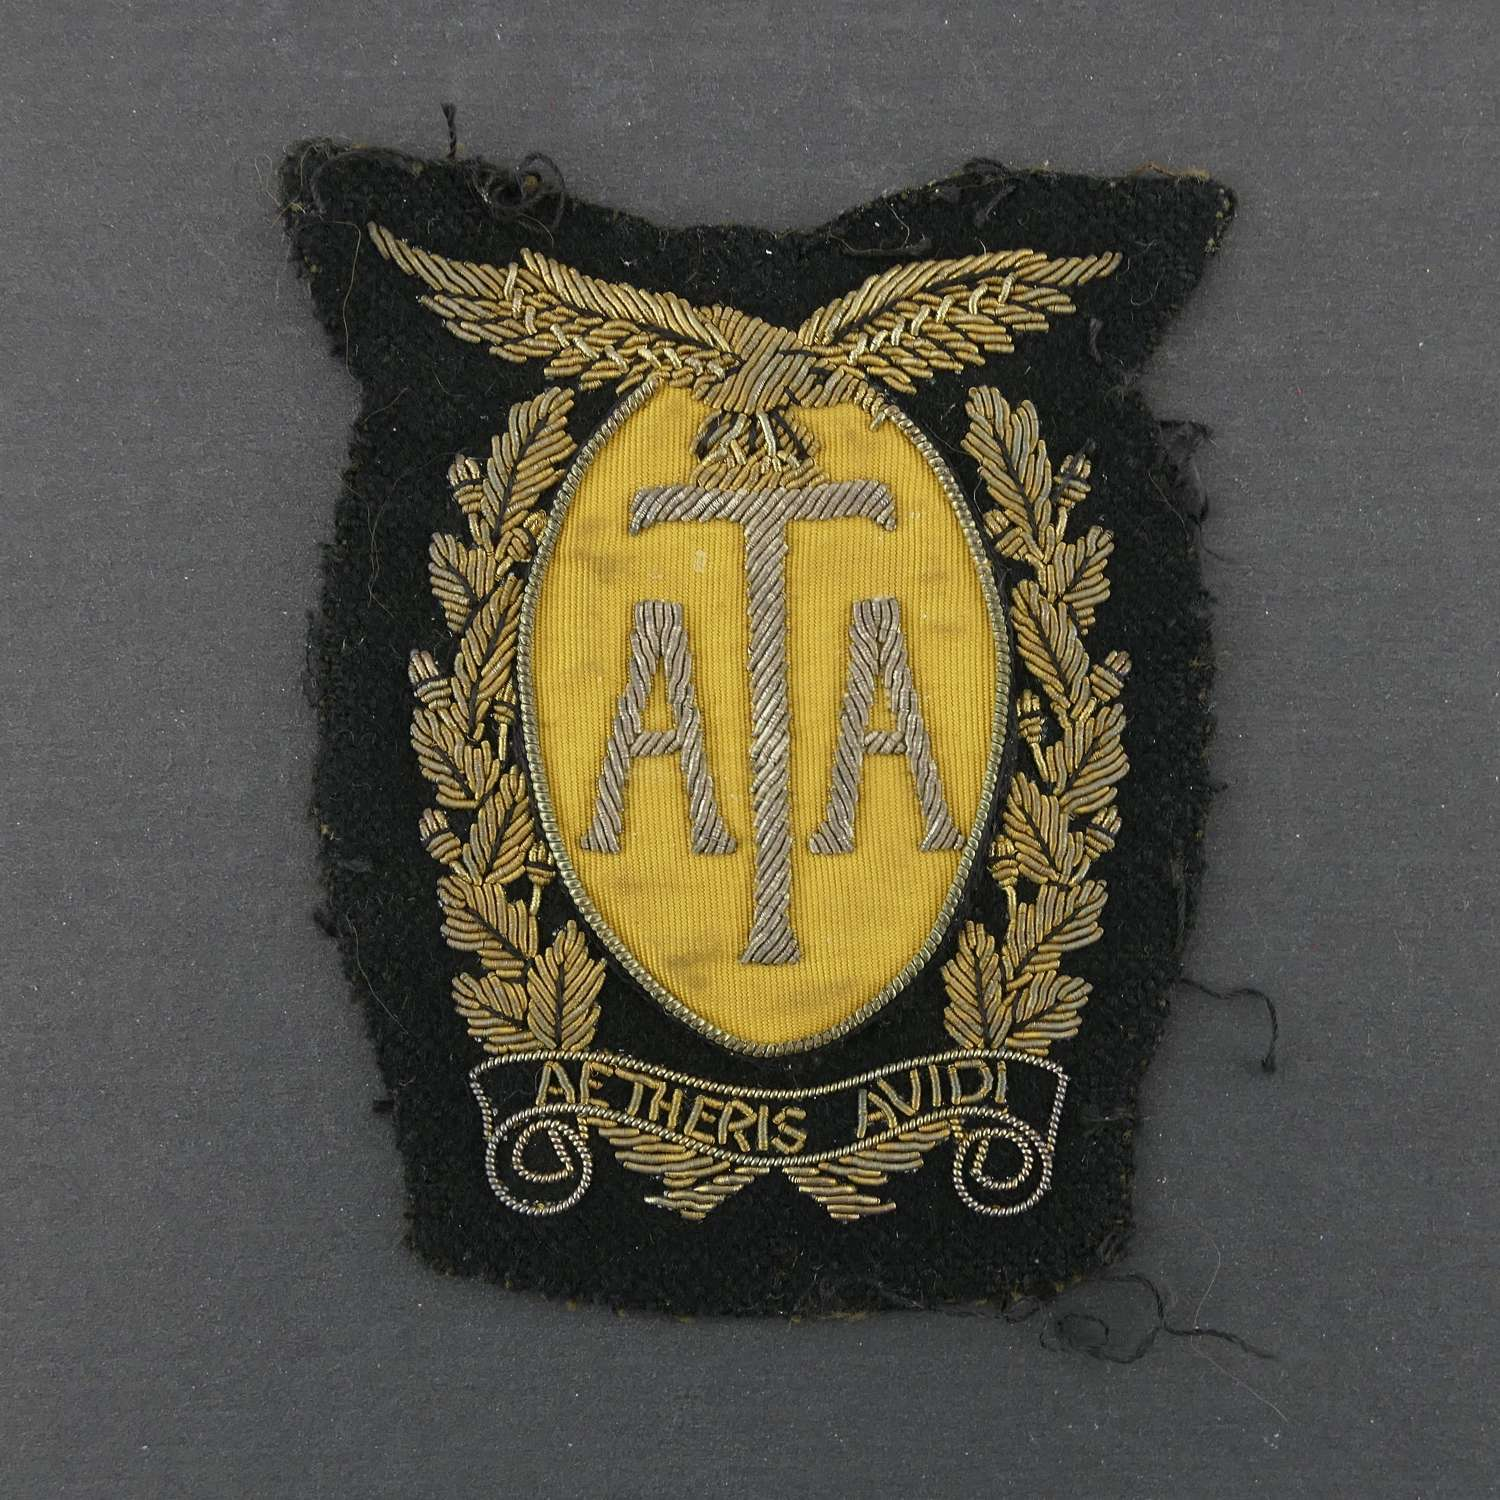 Air Transport Auxiliary blazer badge